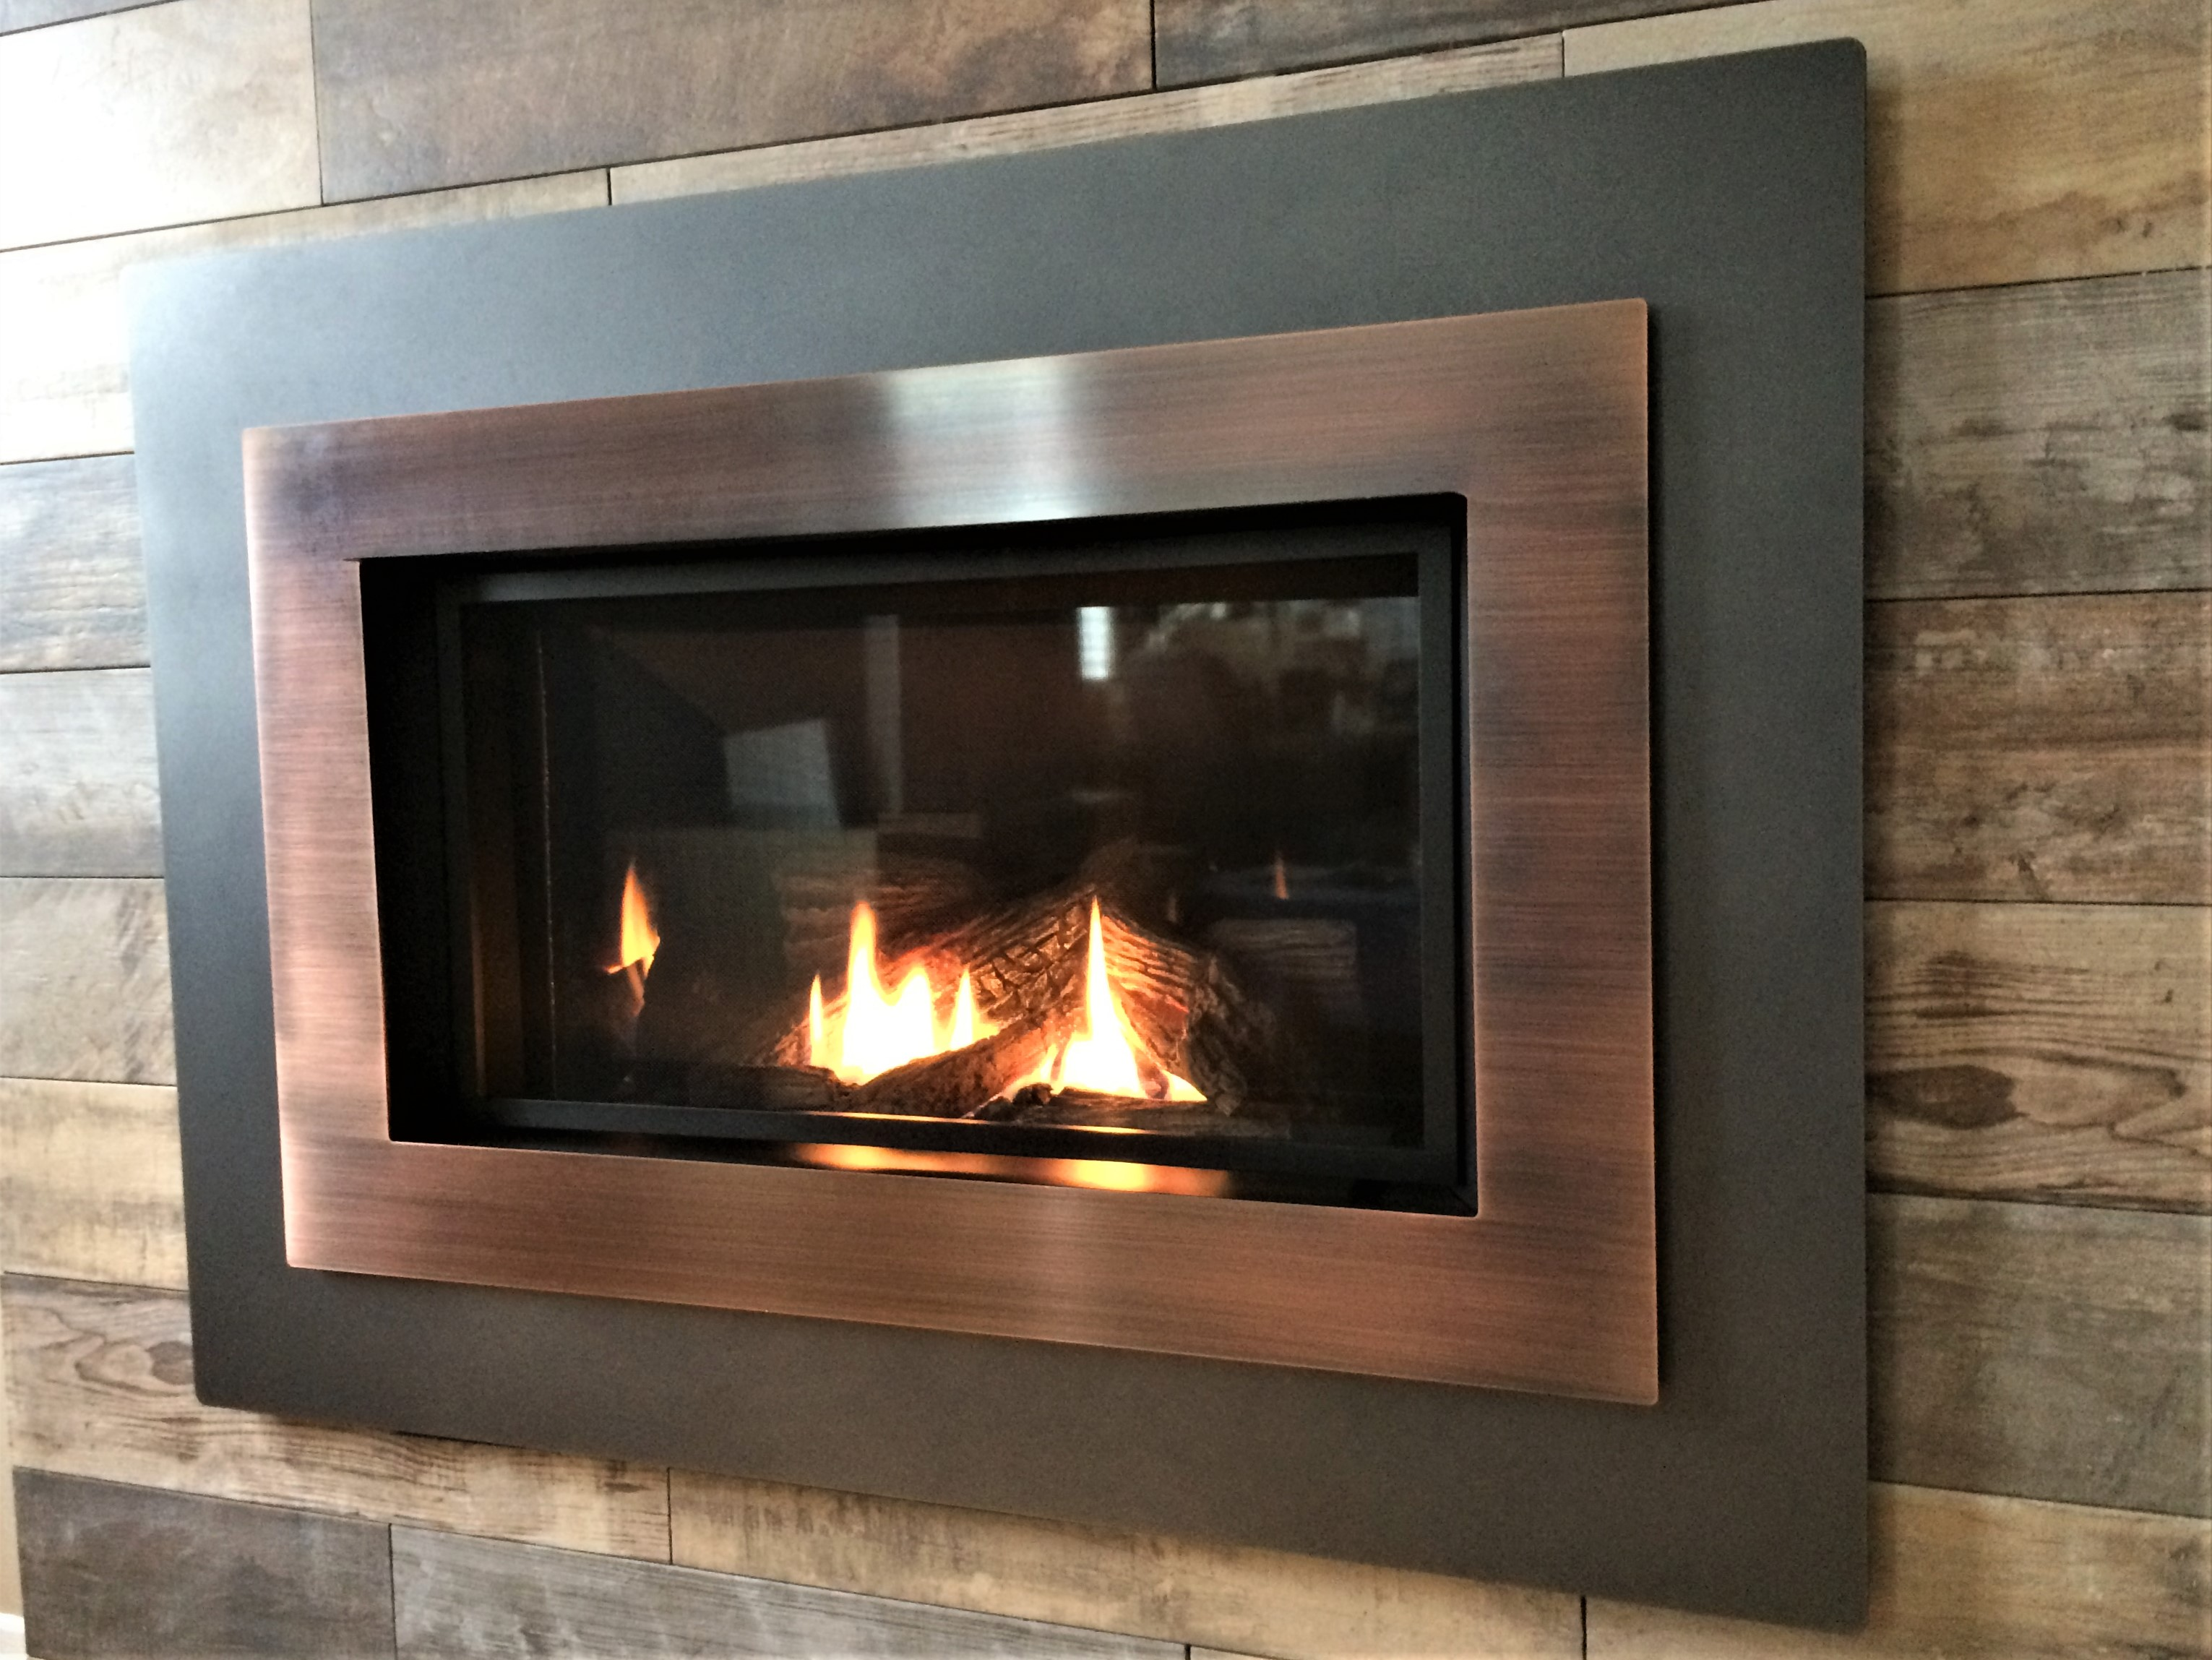 custom insert valor fire stone tiled masonry fireplace legend pin installed corner with radiant inserts finish ledge in and gas